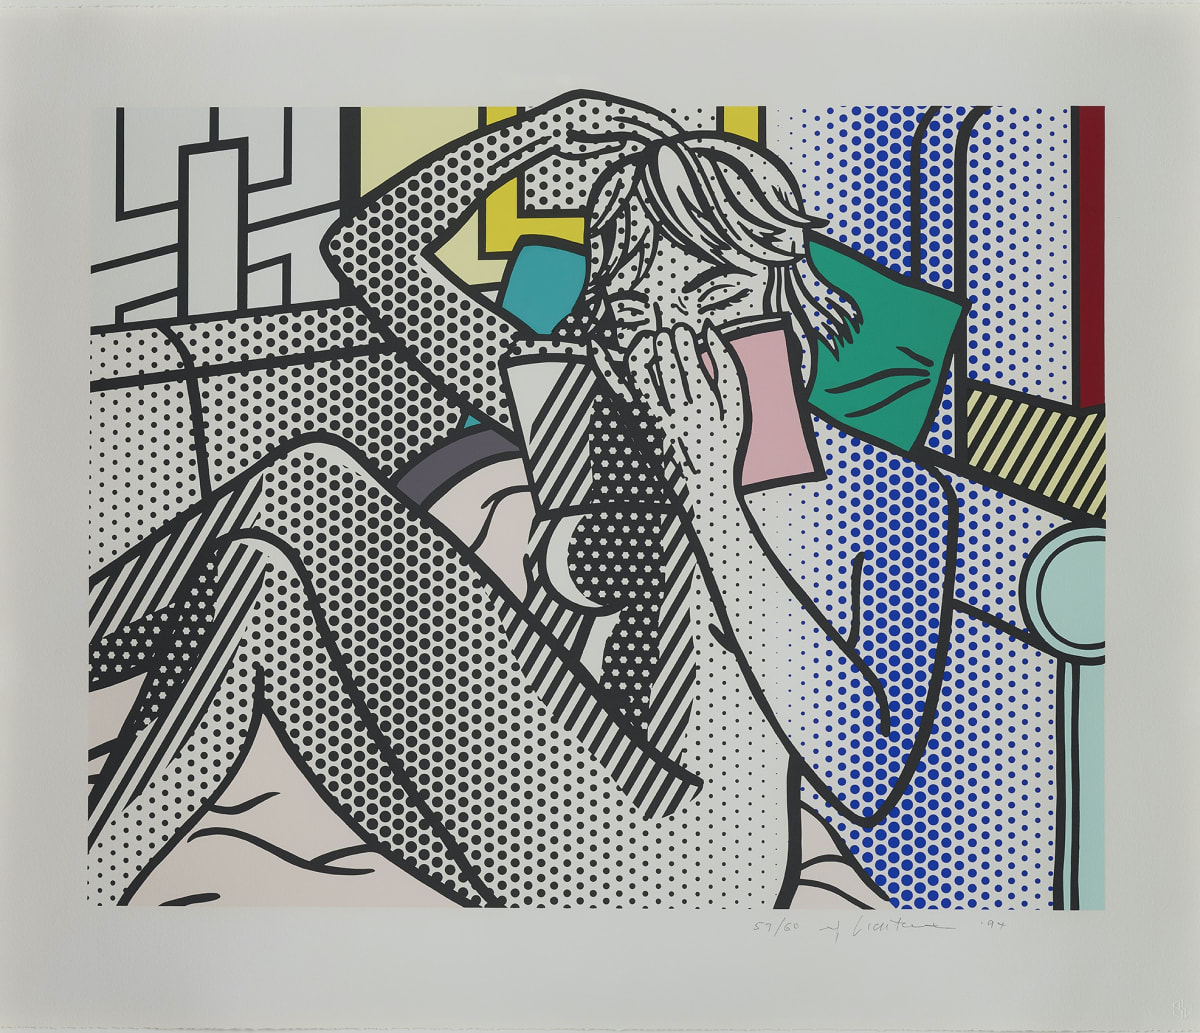 Nude Reading by Roy Lichtenstein, Relief Print from an edition of 60, at Coskun Fine Art, 1994, by Roy Lichtenstein, Relief Print from an edition of 60, at Coskun Fine Art